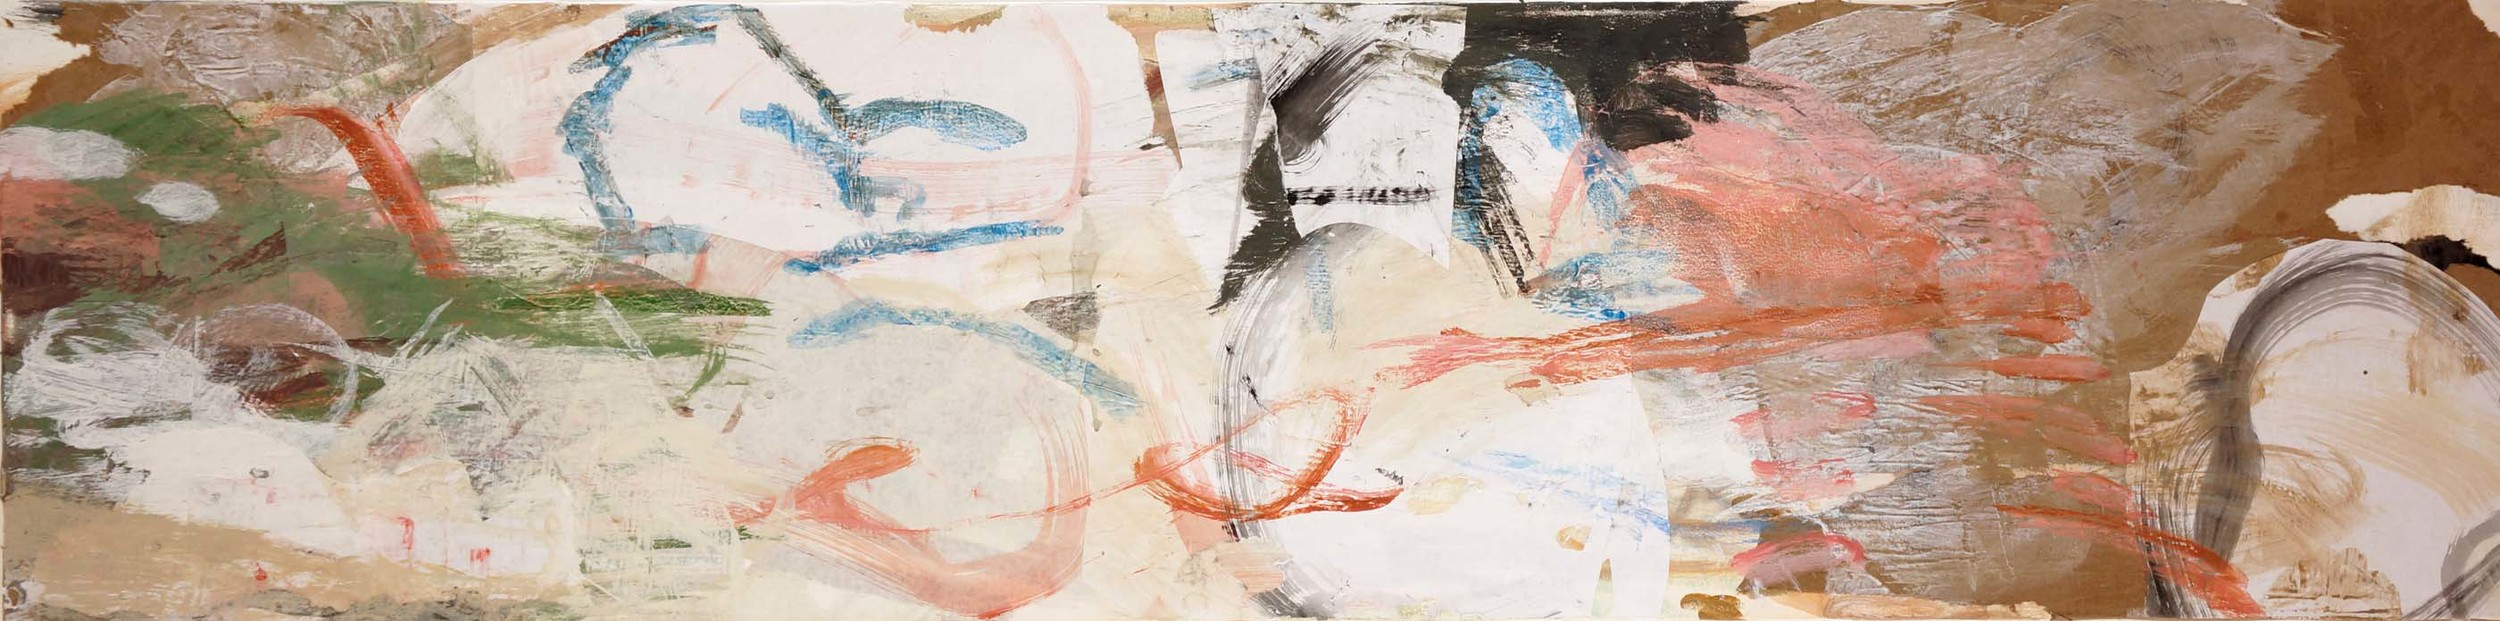 """DAY 5:  kuan creek  16x66""""  acrylic & collaged paper on canvas"""